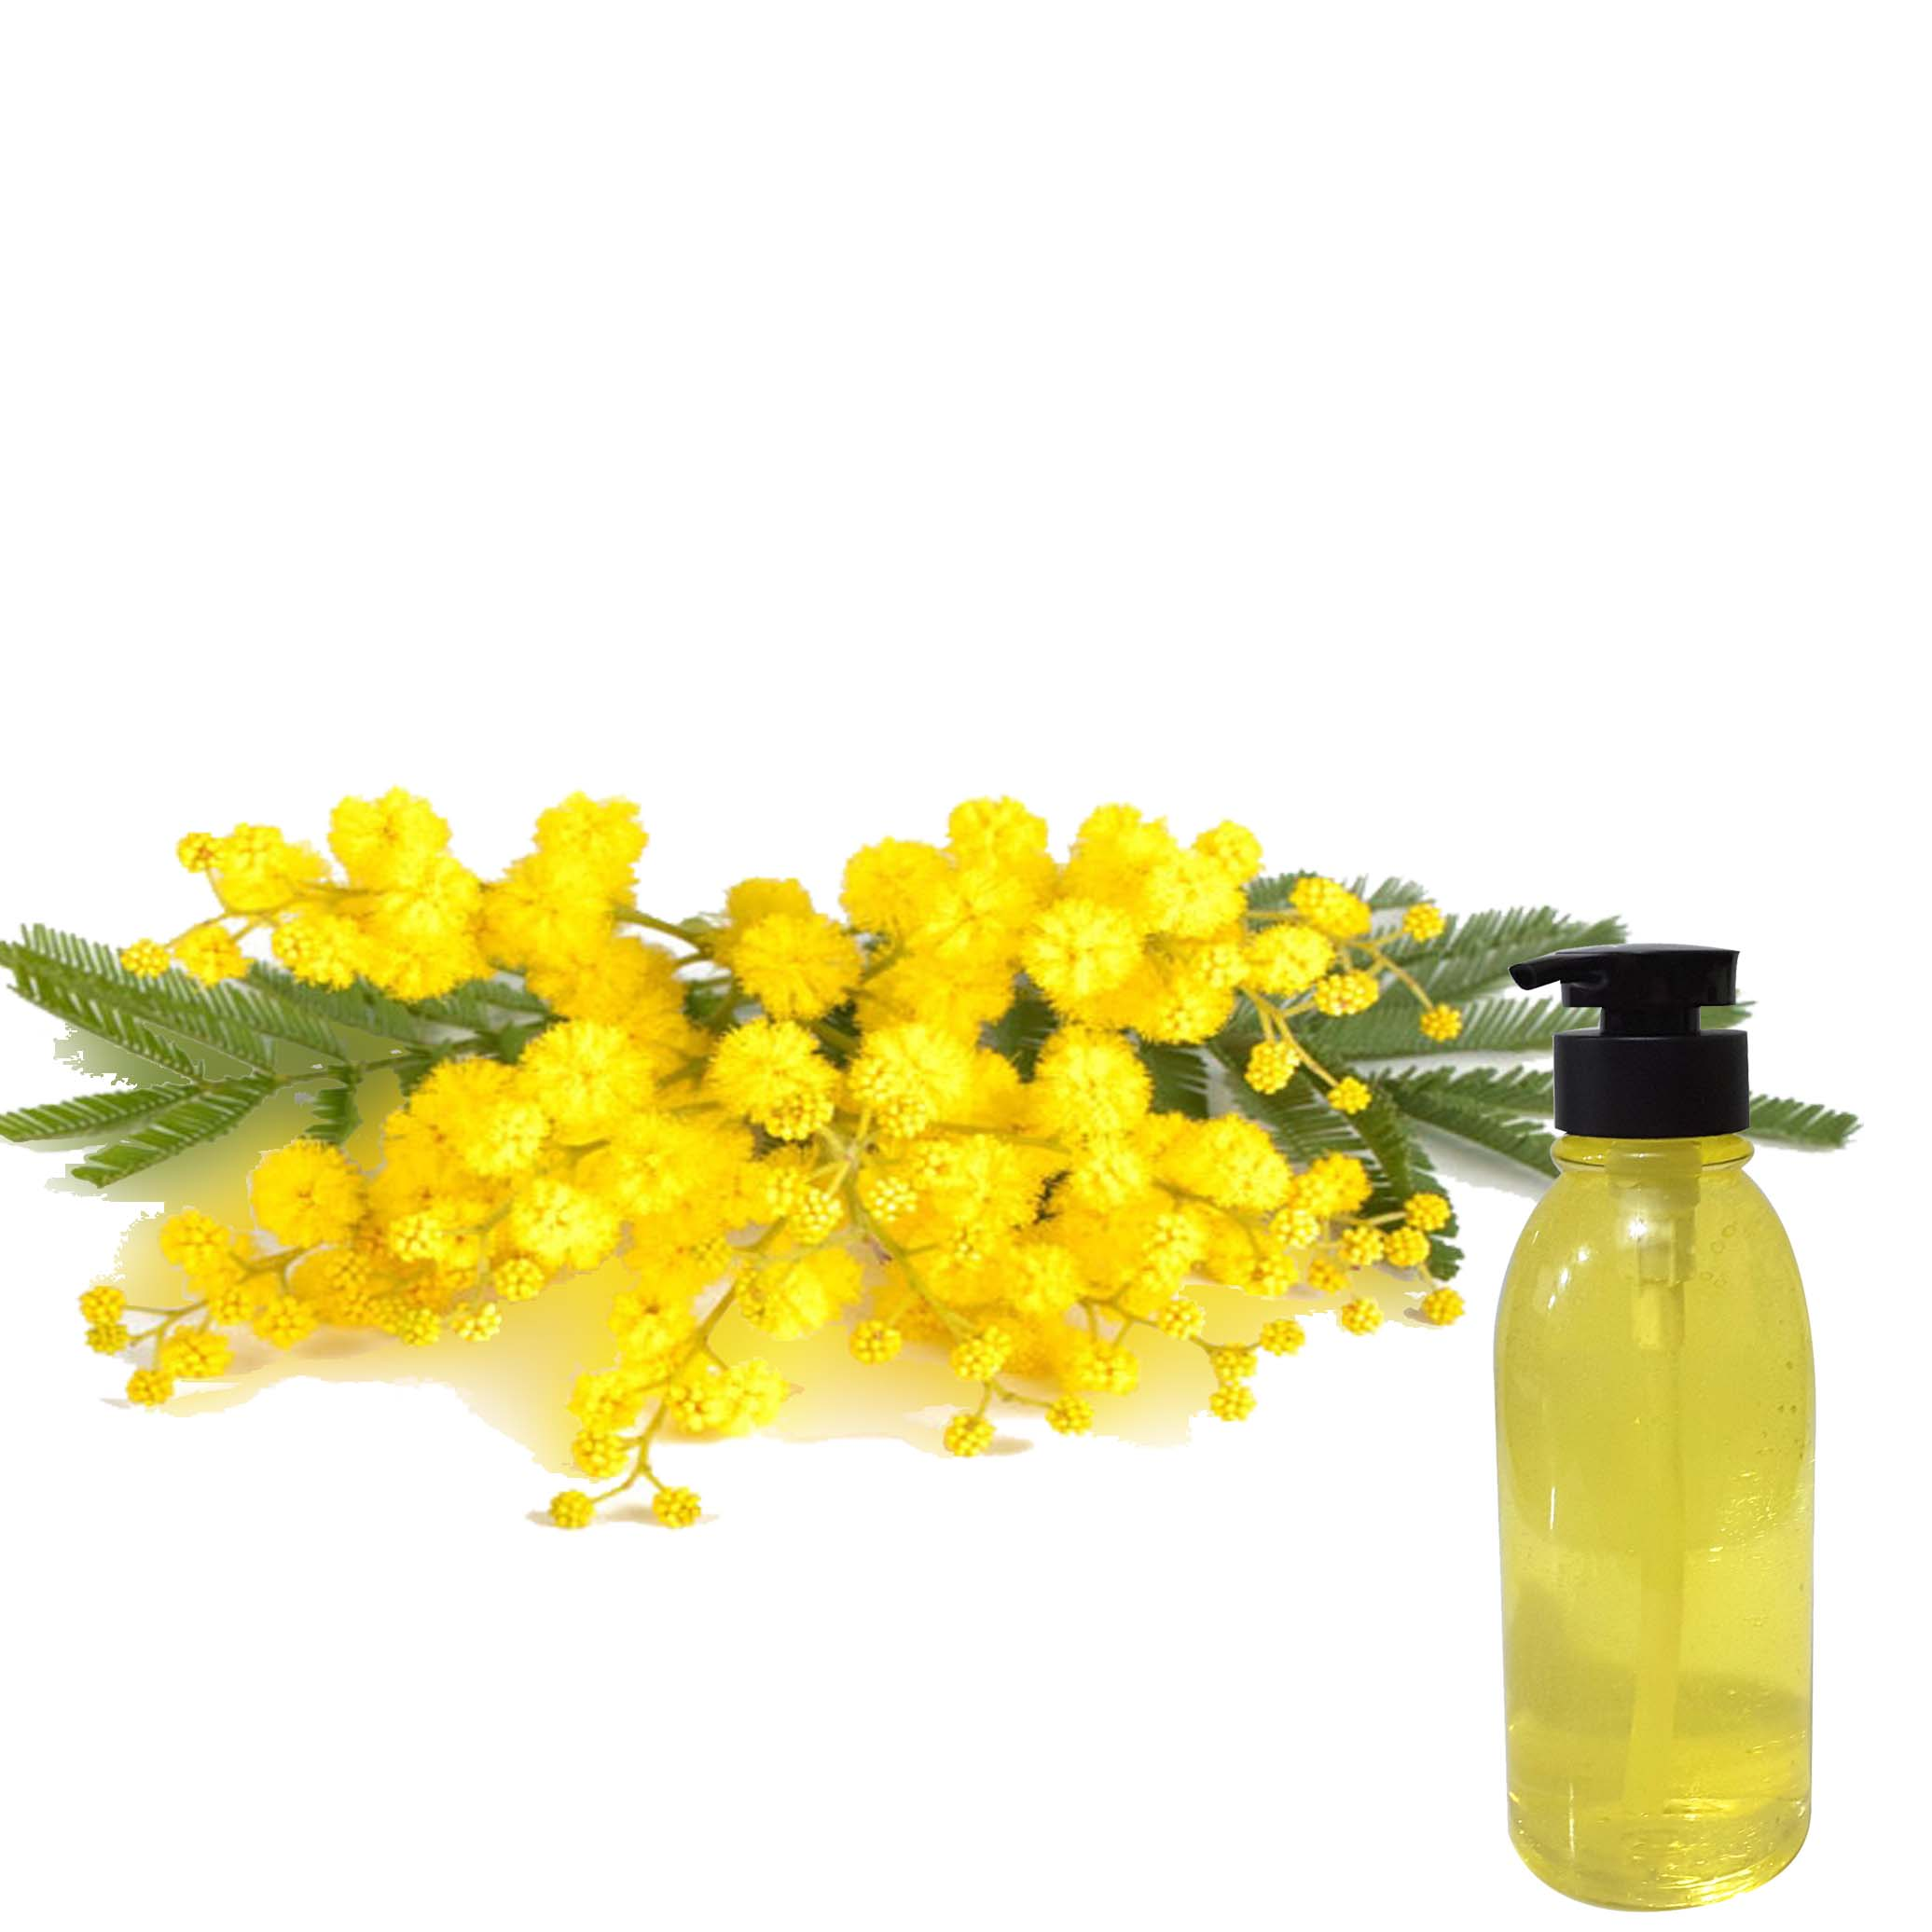 Virgin Canola (Rapeseed) Massage Oil Caramel EO -500ml